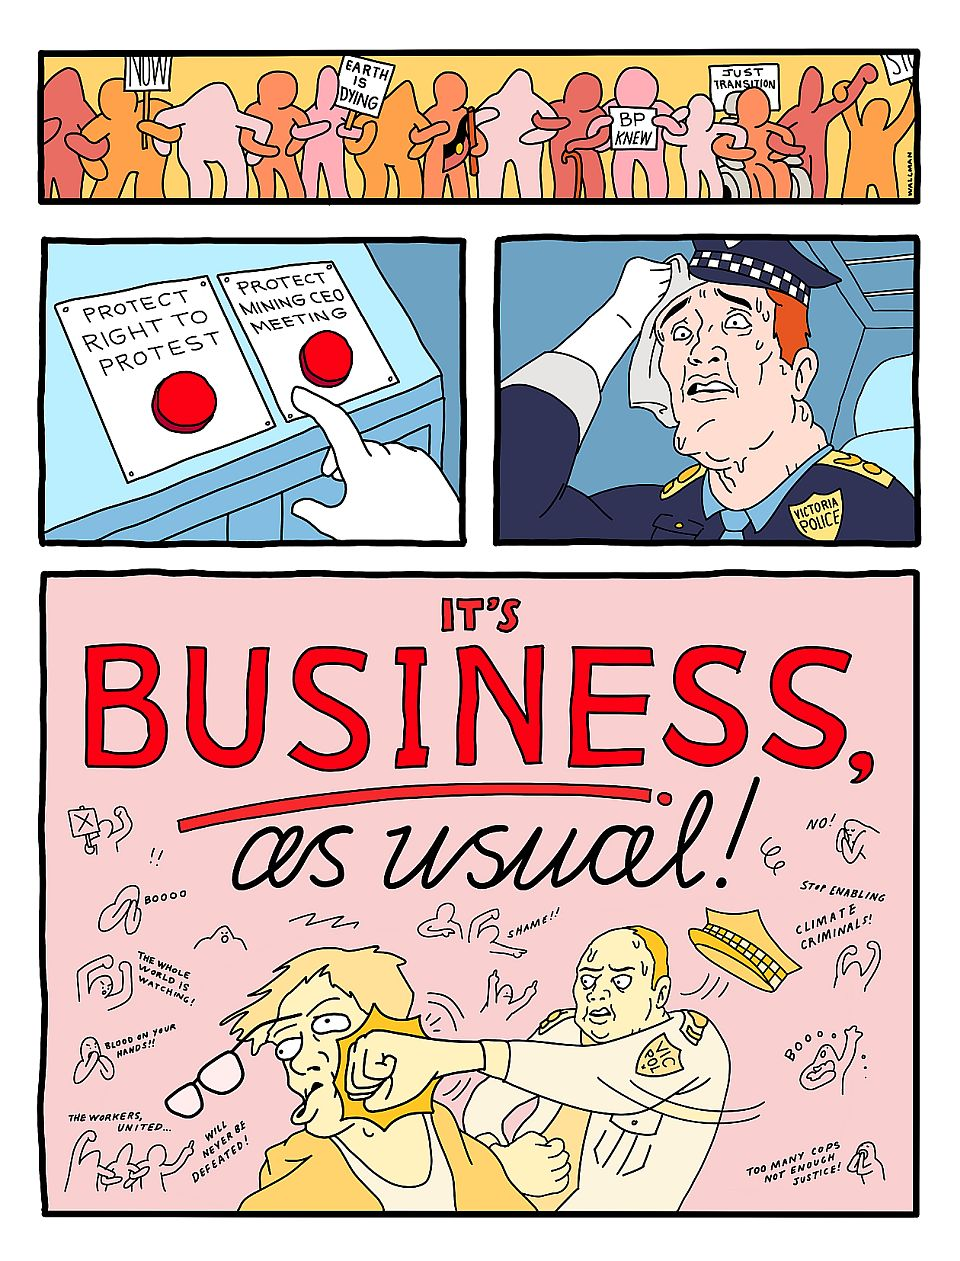 BUSINESS AS USUAL - IMARC CARTOON